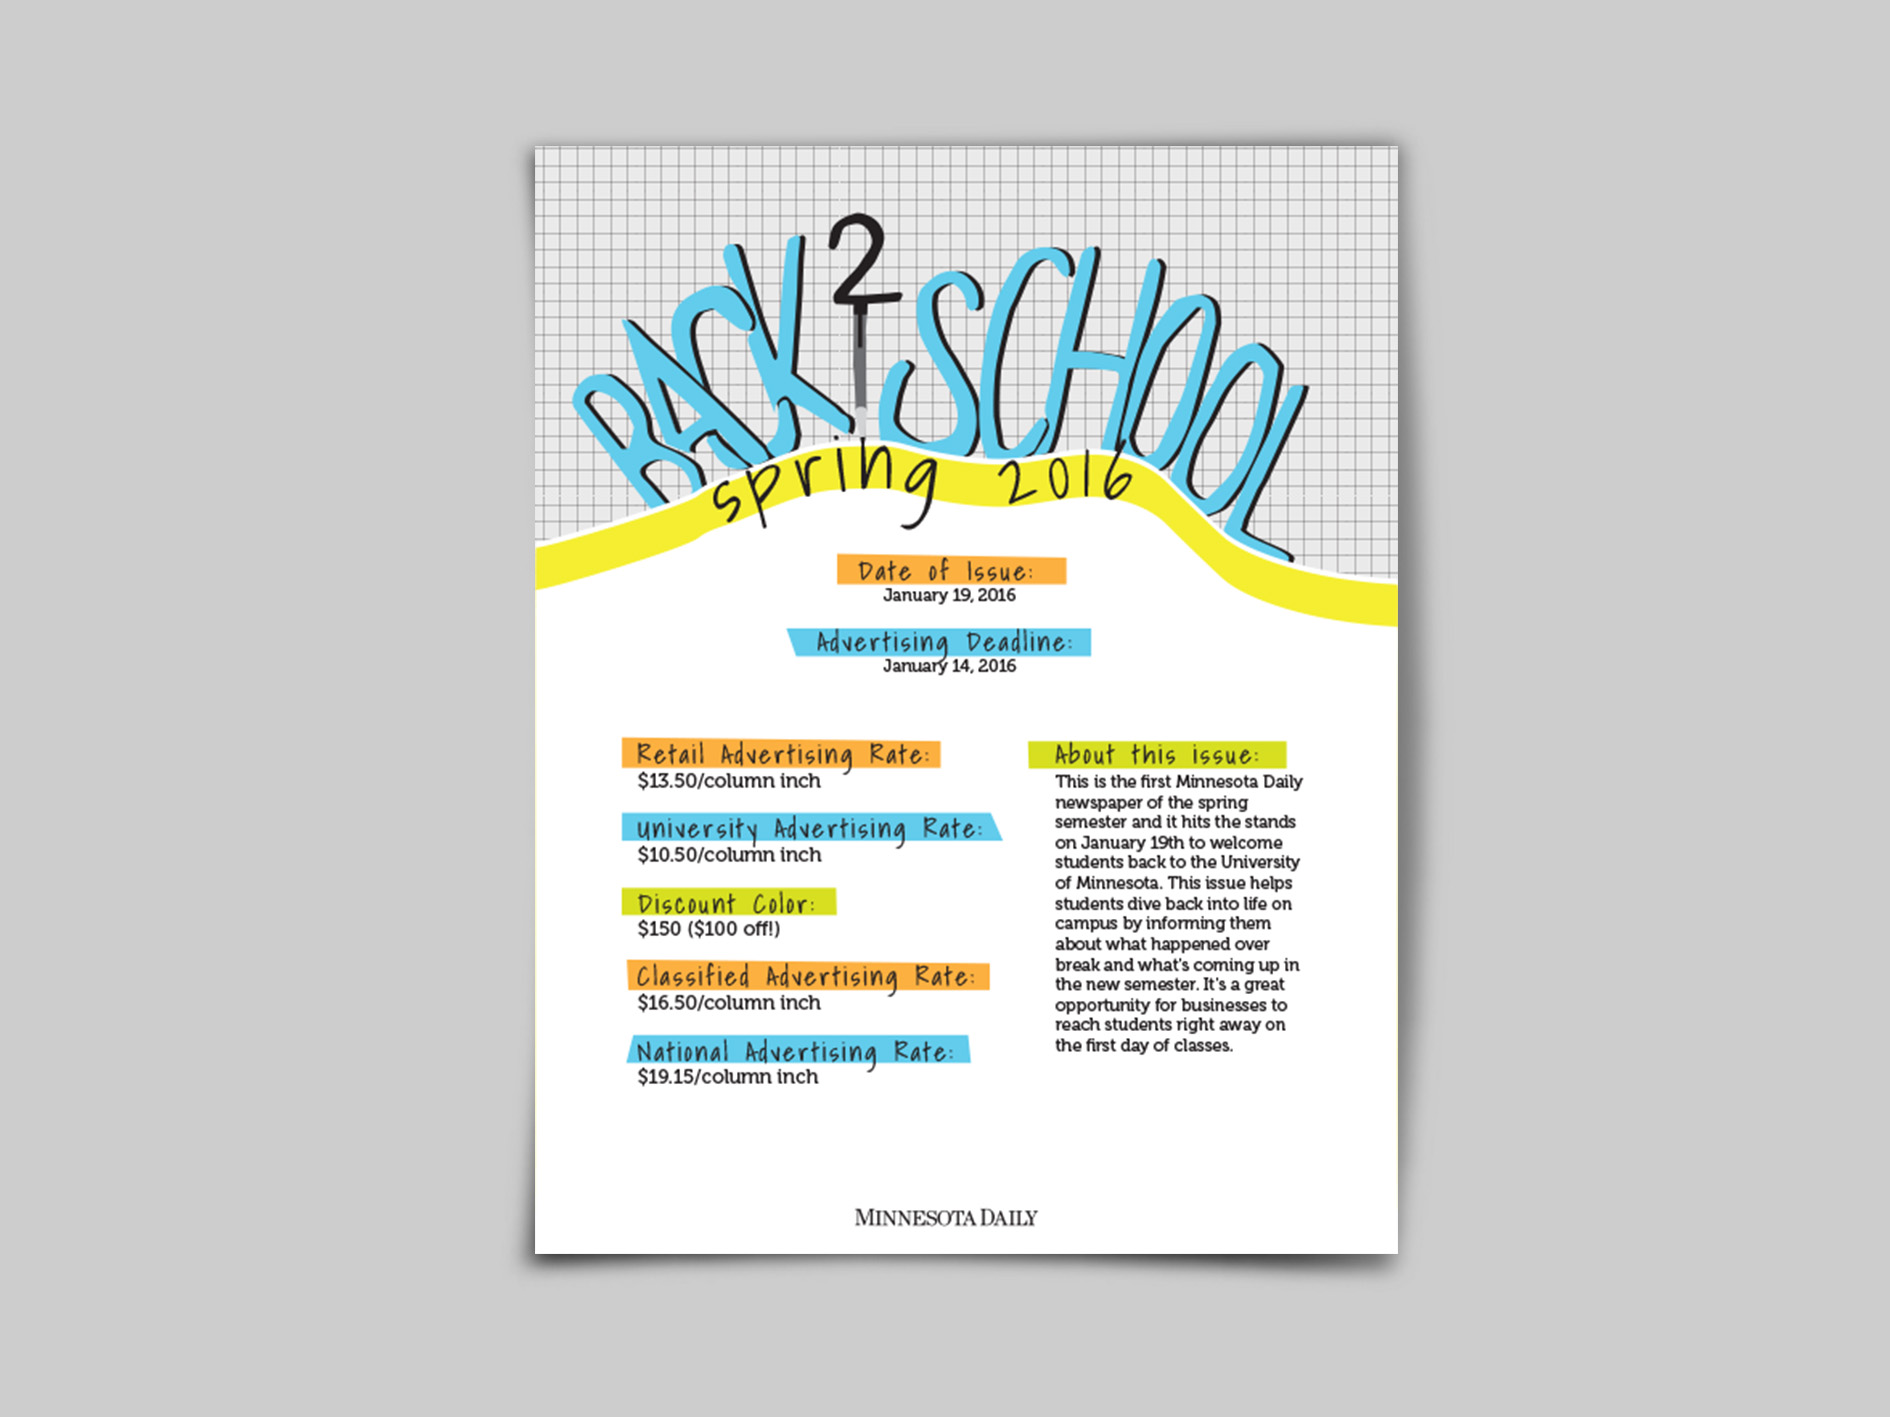 Back to School infosheet mockup.jpg